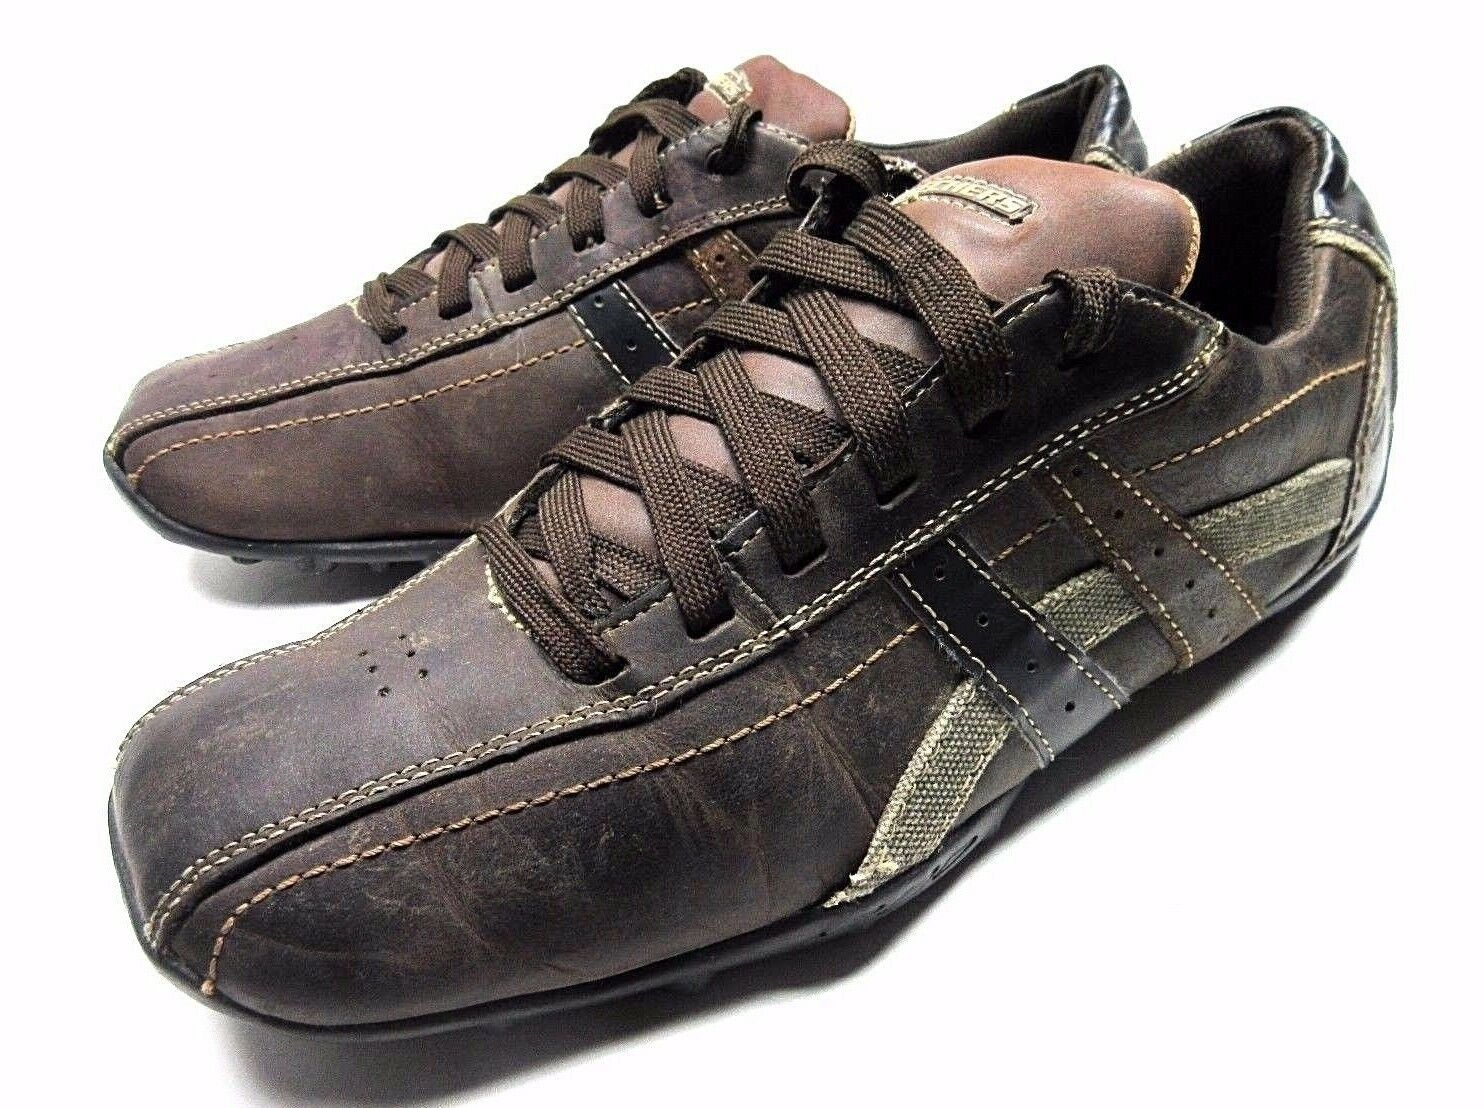 SKECHERS SNEAKERS SIZE 11 BROWN DISTRESSED LEATHER LACE UP MENS SHOES